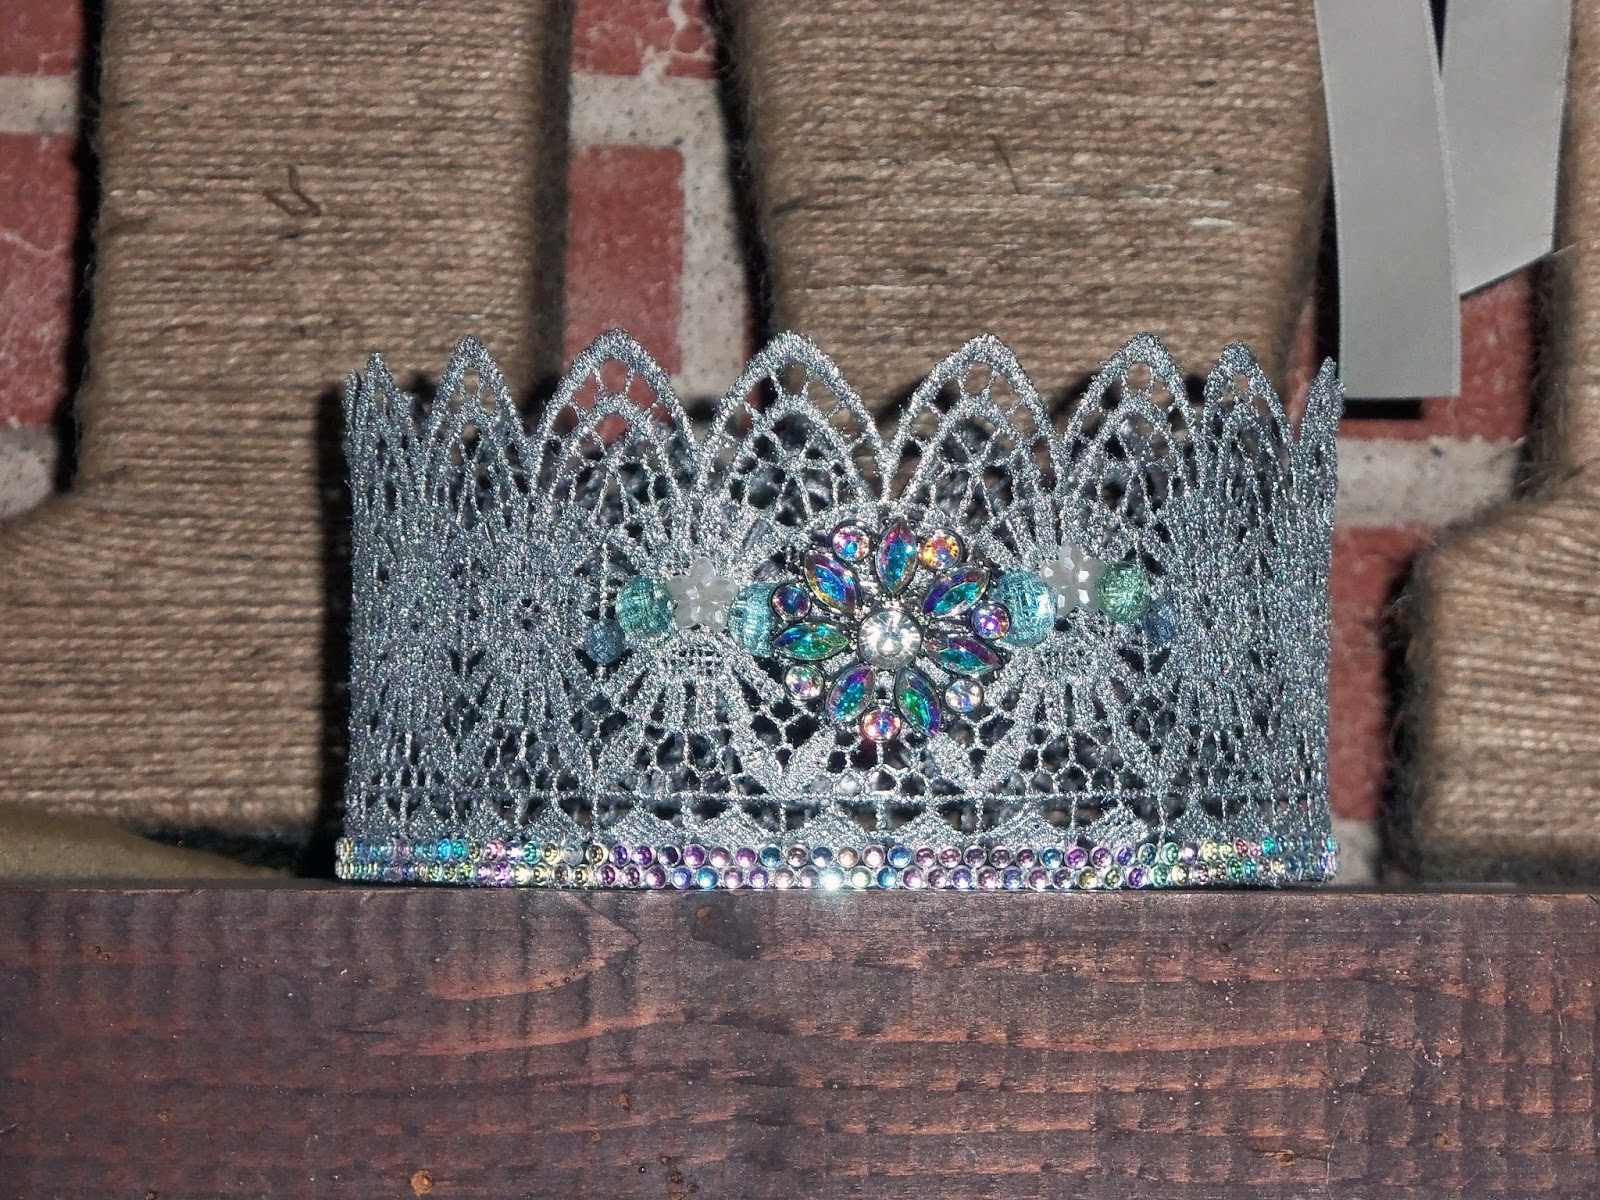 Alice Scraps Wonderland:  DIY lace crown for a Frozen birthday party +  ideas for an Elsa inspired tutu dress and shoes on blog.